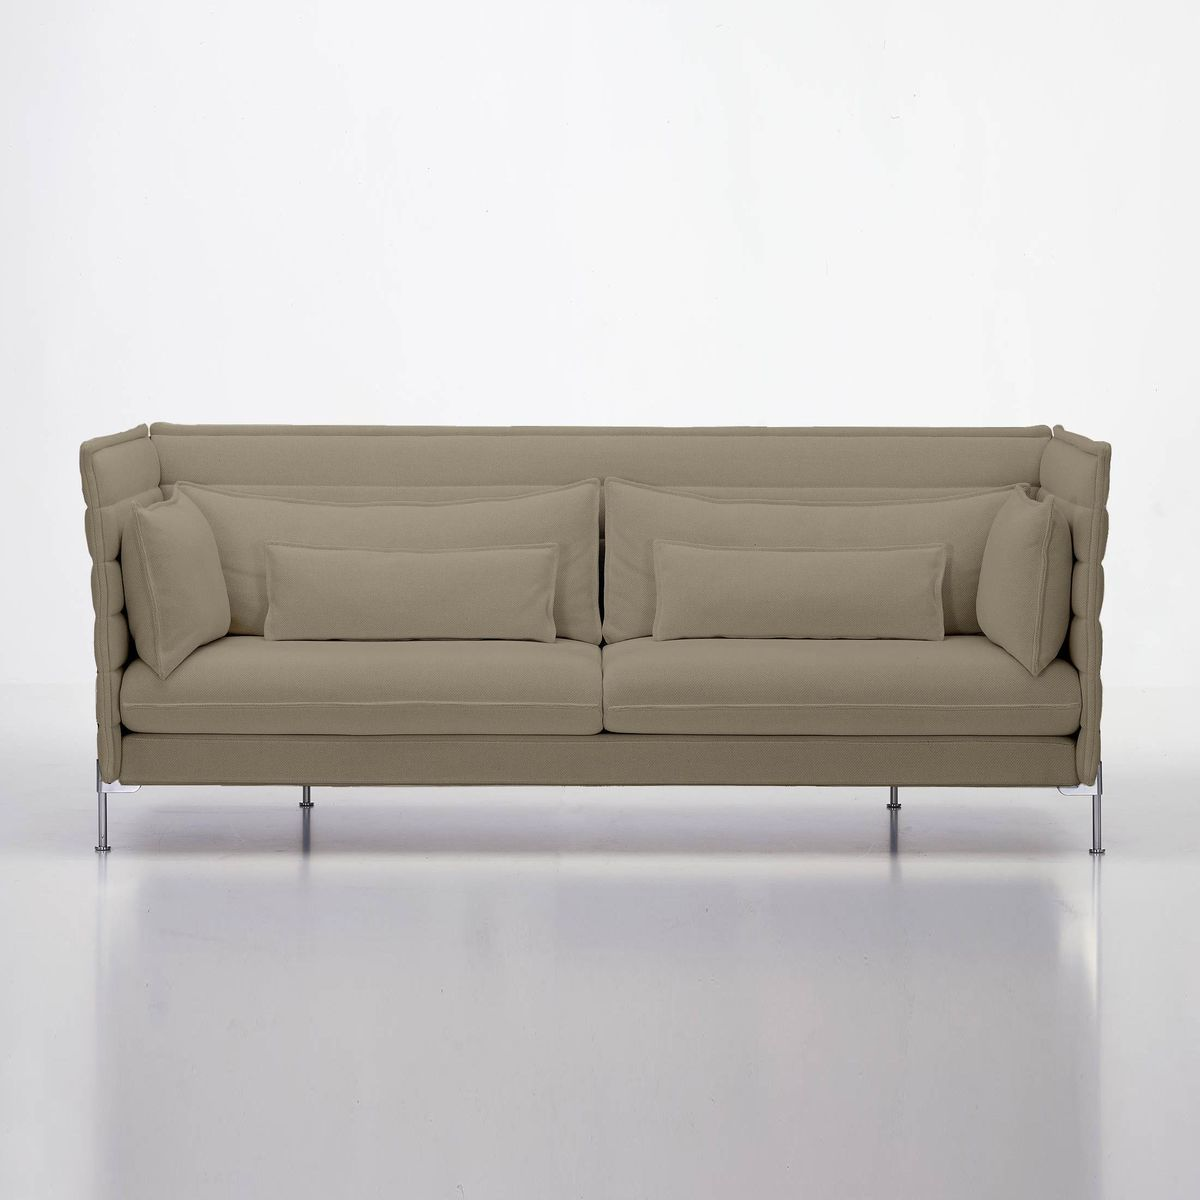 alcove bouroullec 3 sitzer sofa vitra. Black Bedroom Furniture Sets. Home Design Ideas